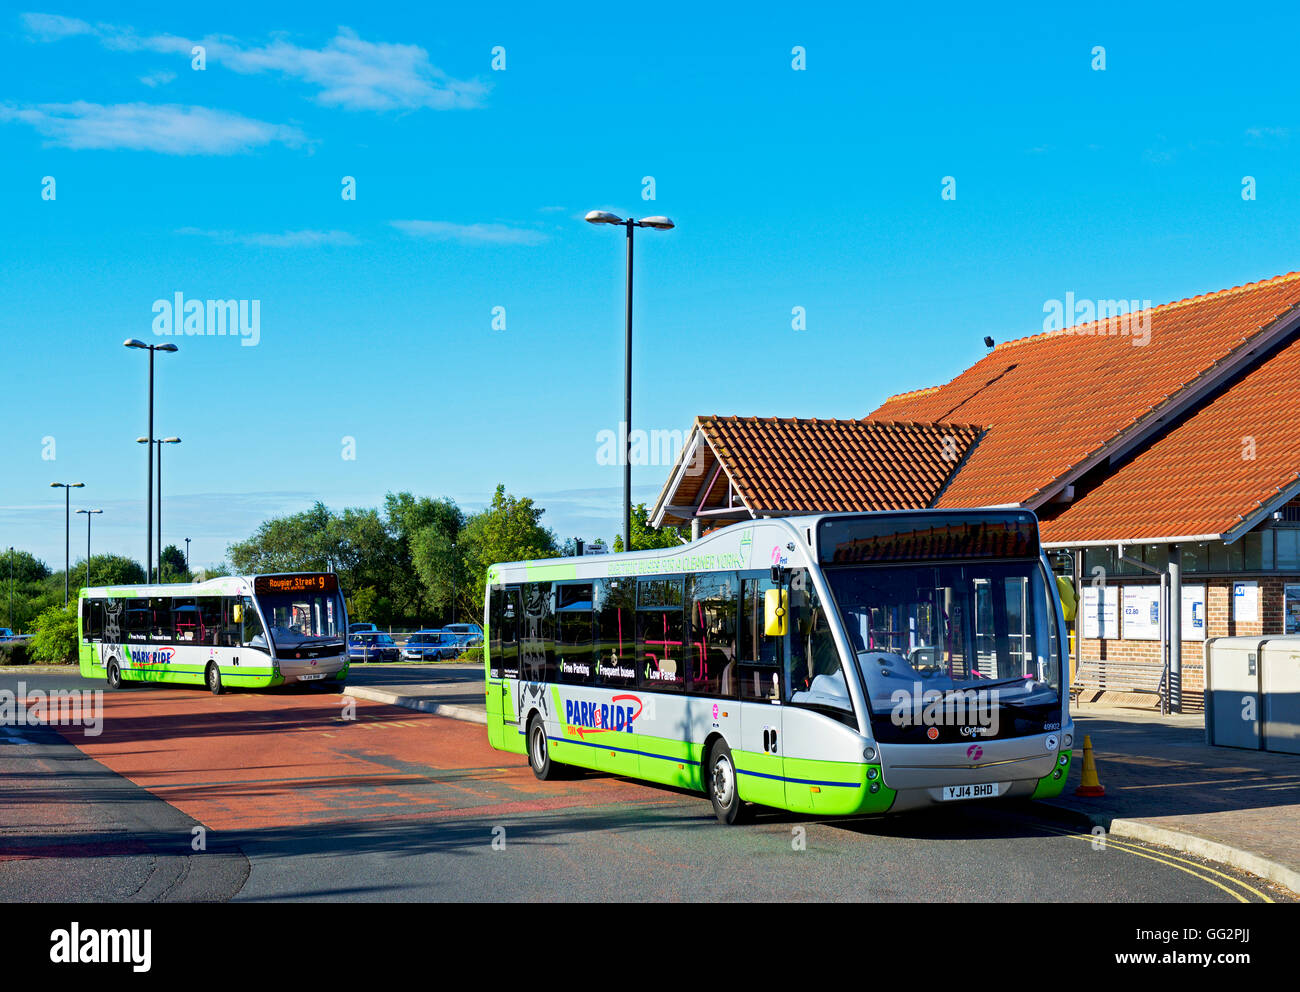 Buses parked at Monks Cross Park & Ride facility, near York, North Yorkshire, England UK - Stock Image